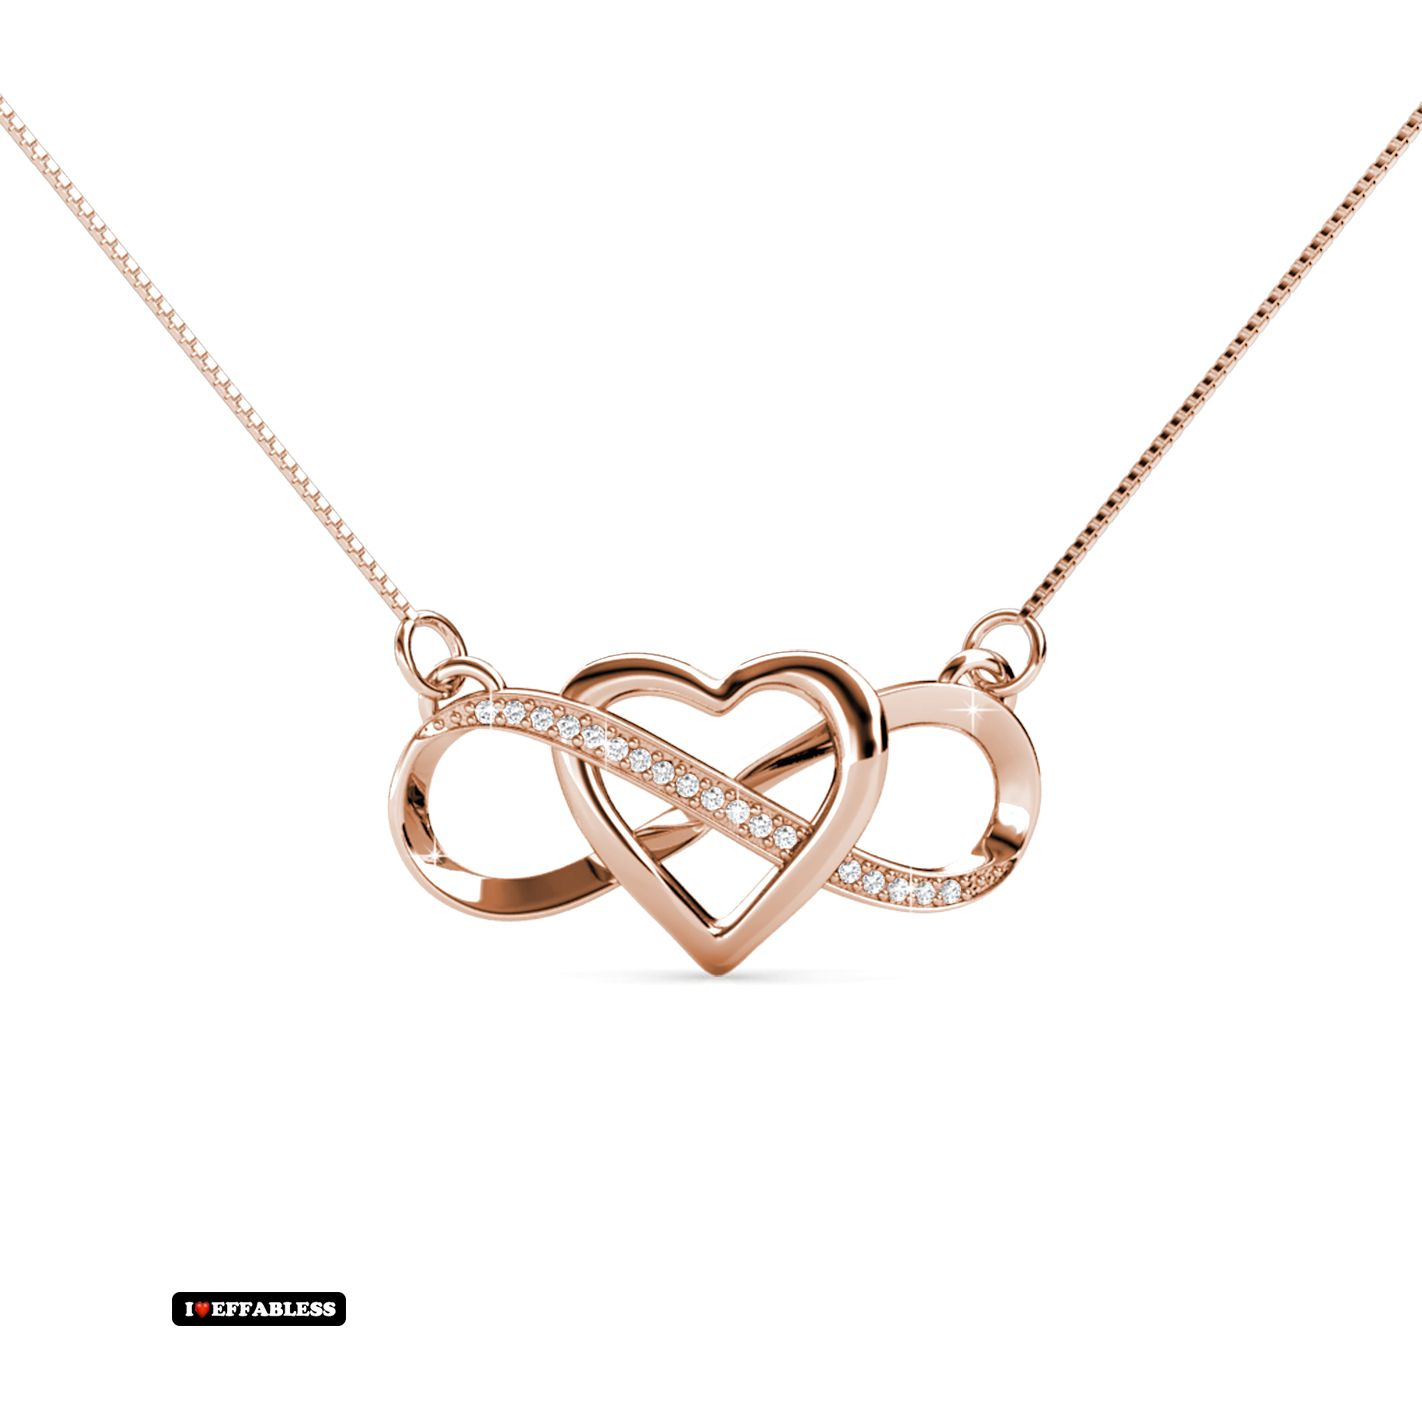 2daf11229b5810 INFINITY HEART NECKLACE 18K Rose Gold Plated